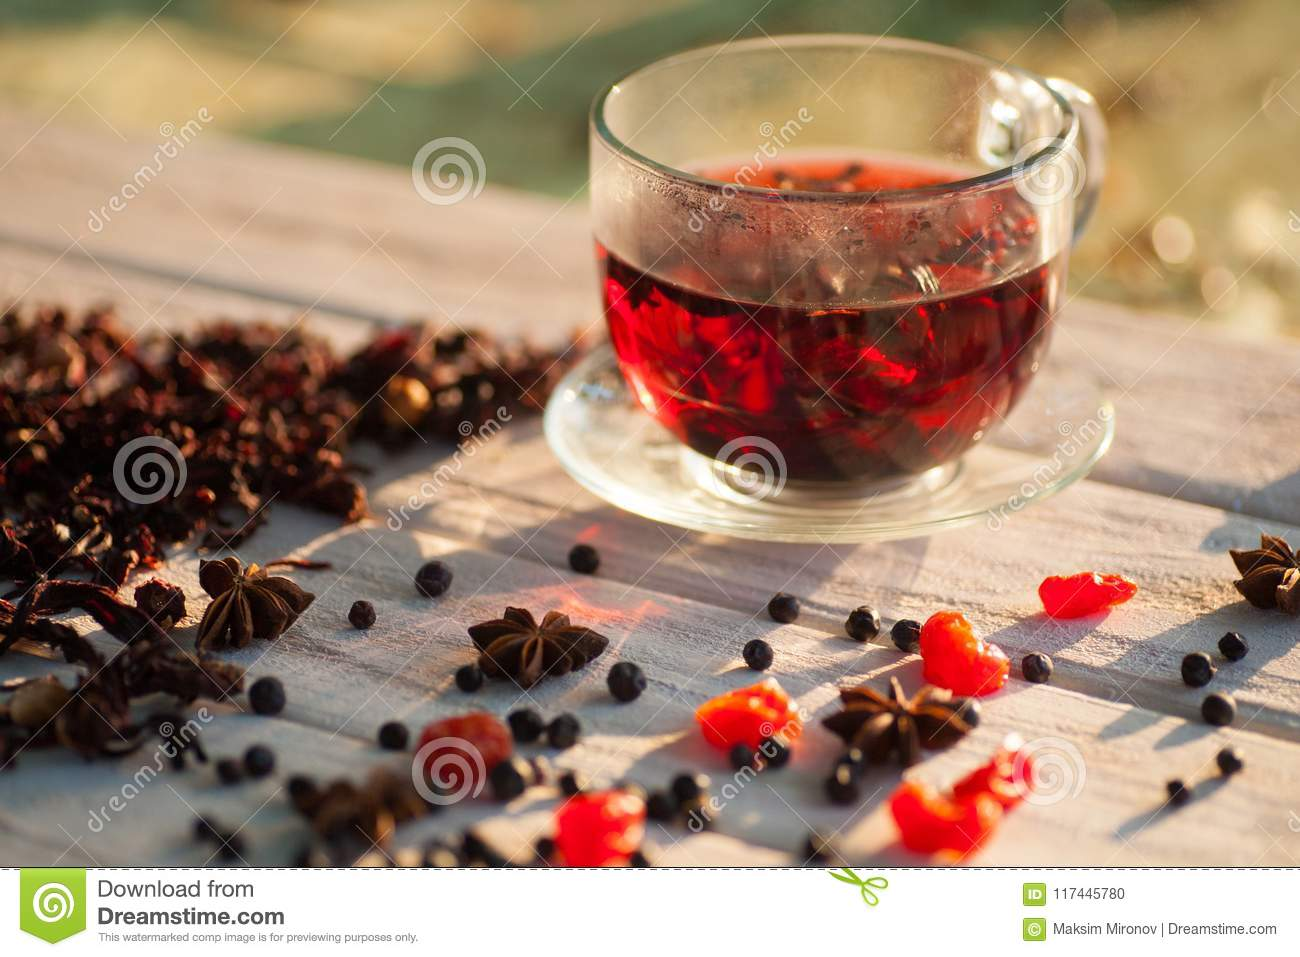 Red Hot Hibiscus Tea In A Glass Mug Stock Photo Image Of Healthy